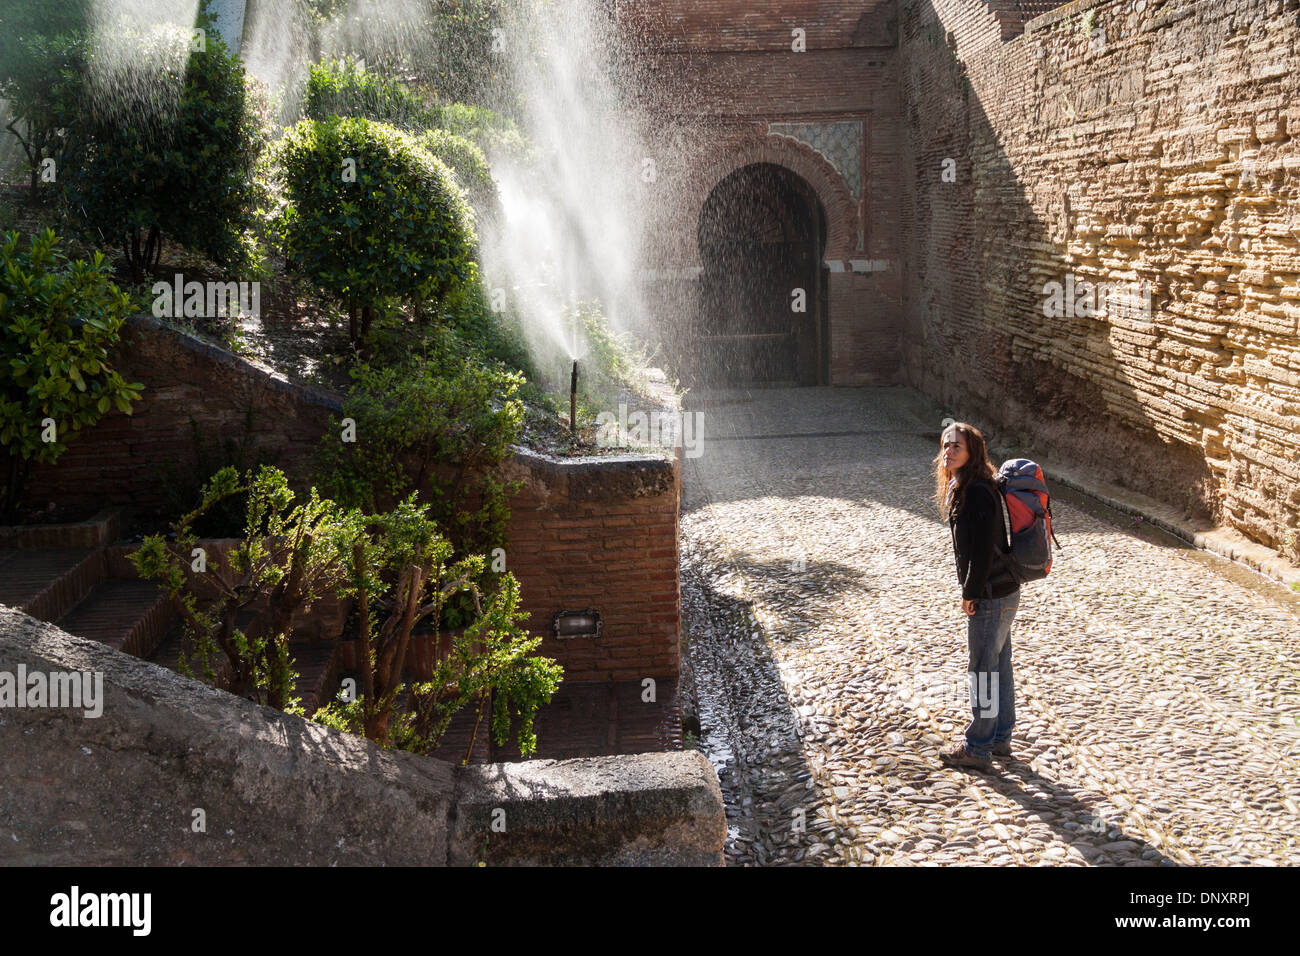 Female tourist cooling down near garden sprinklers on a hot day in La Alhambra, Granada, Andalusia, Spain - Stock Image